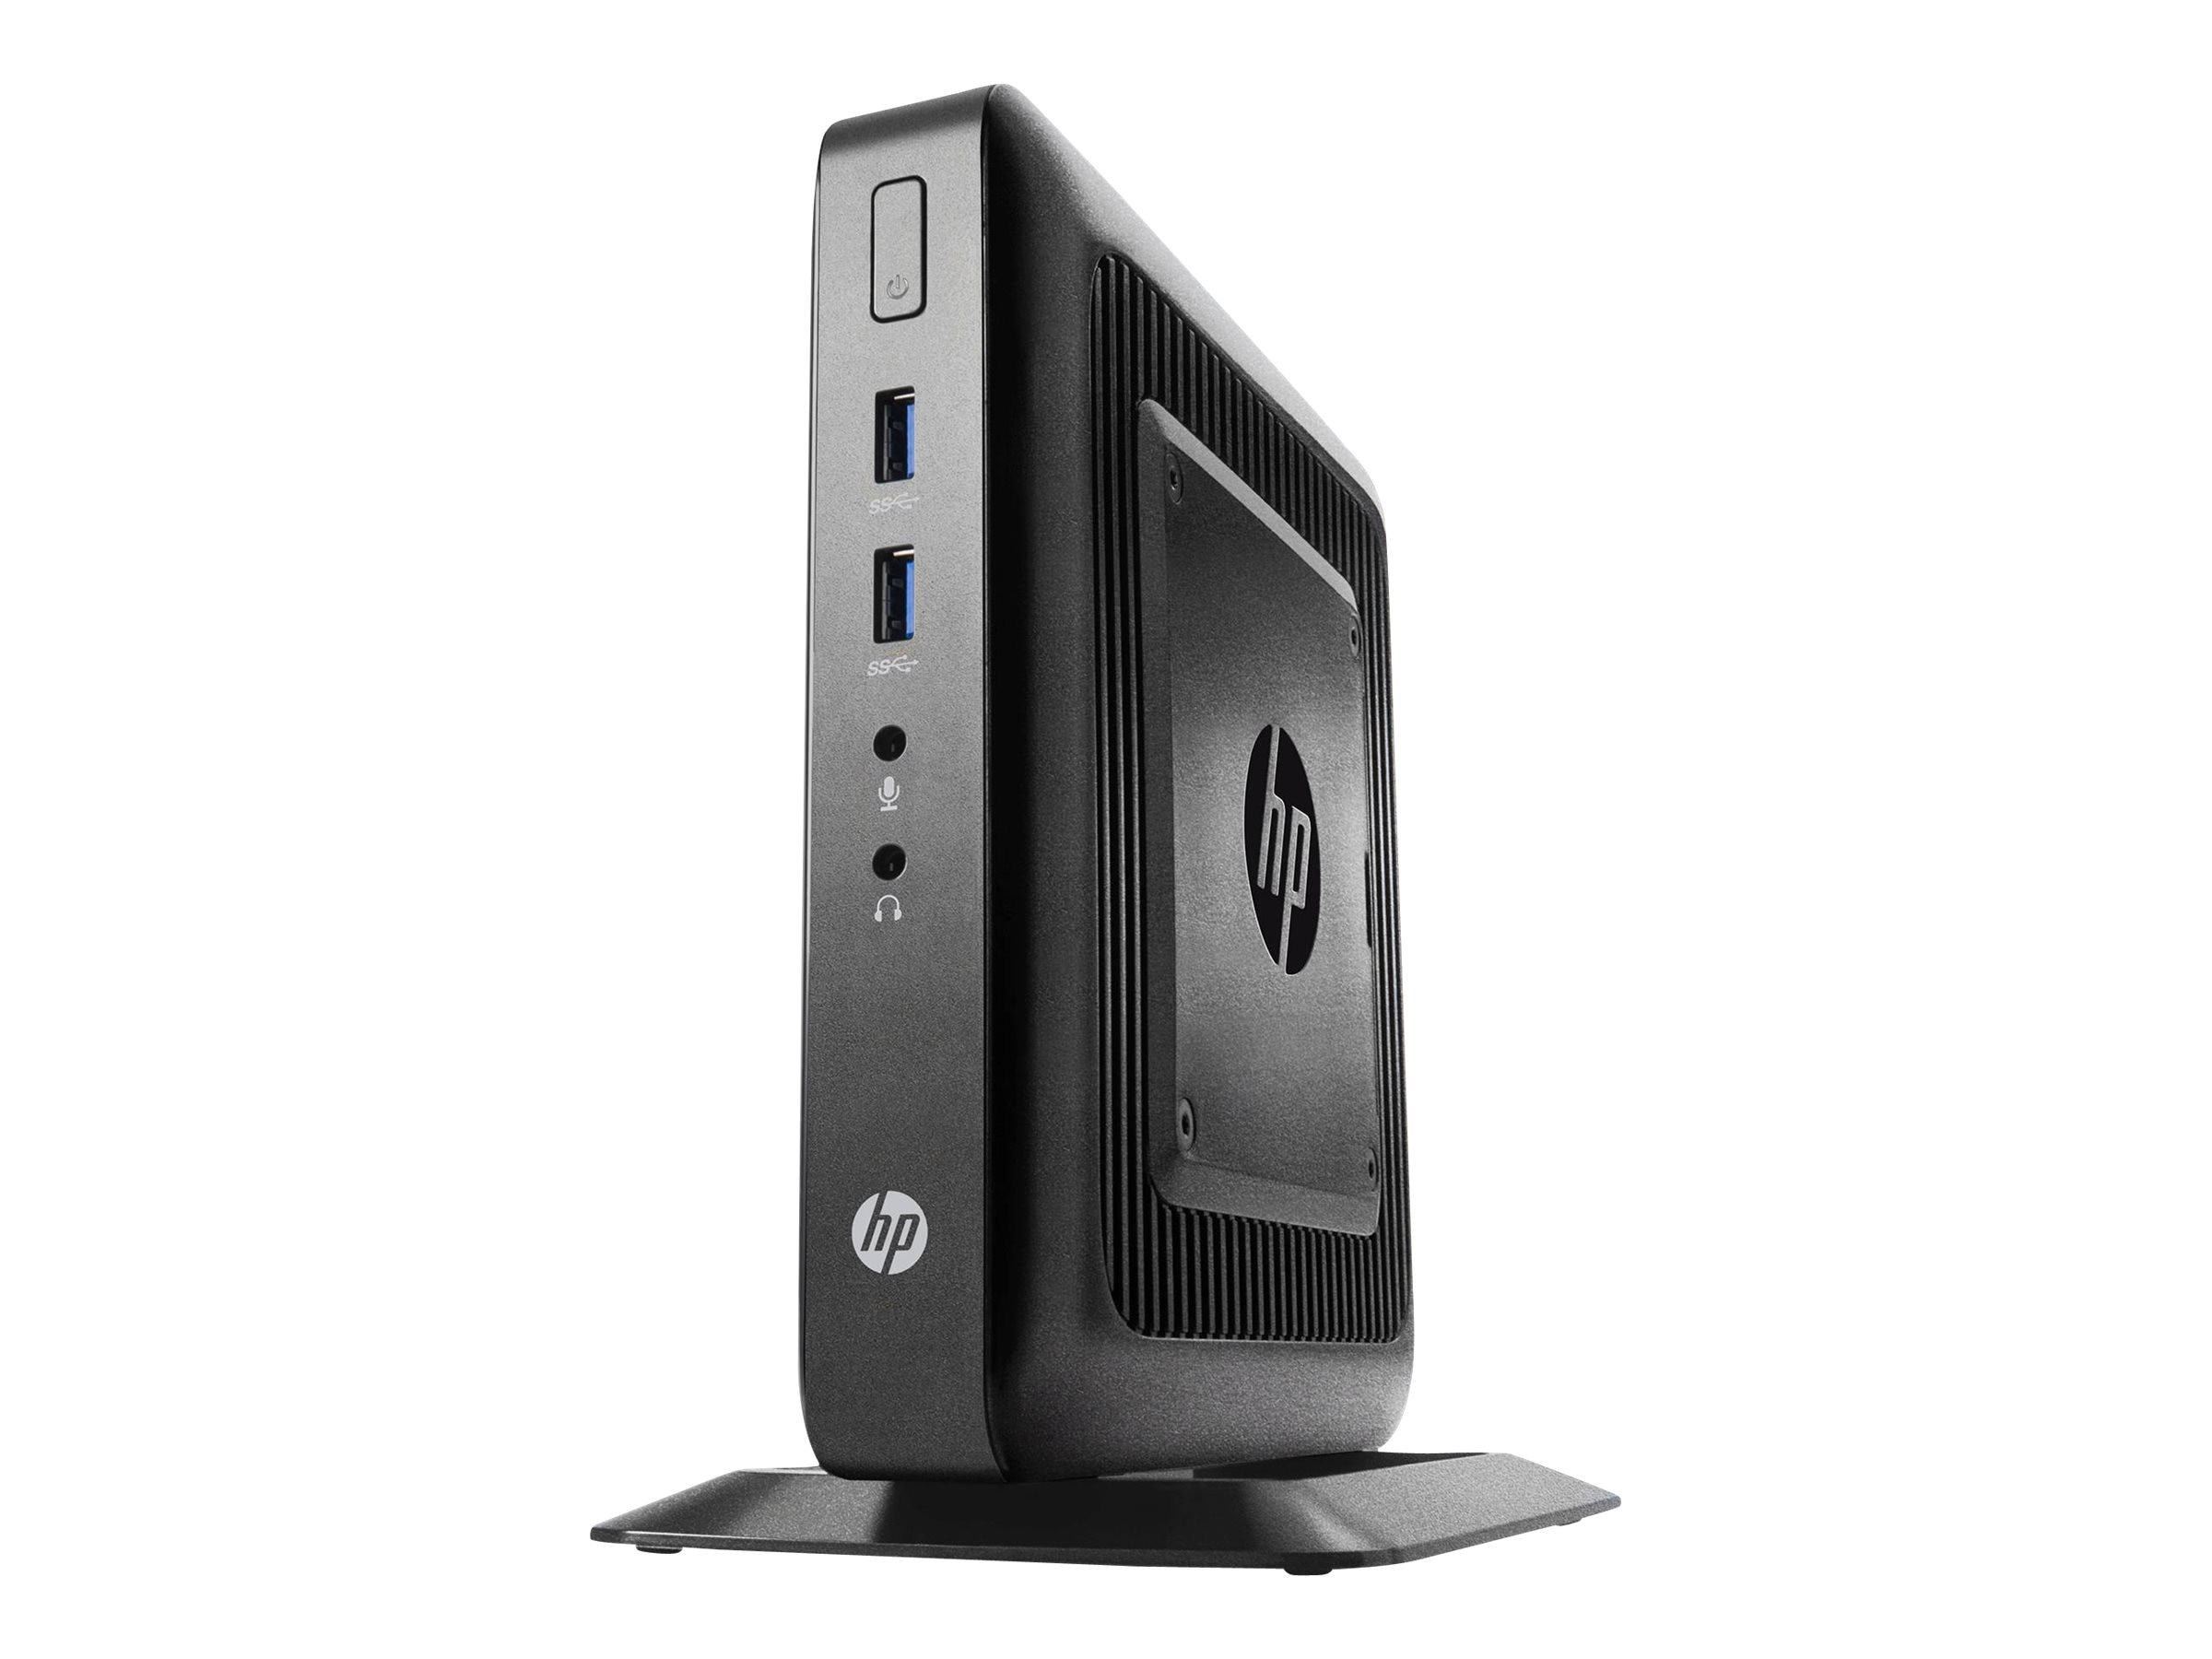 HP t520 Flexible Thin Client AMD DC GX-212JC 1.2GHz 8GB 64GB Flash GbE W10 IoT, V2V46UT#ABA